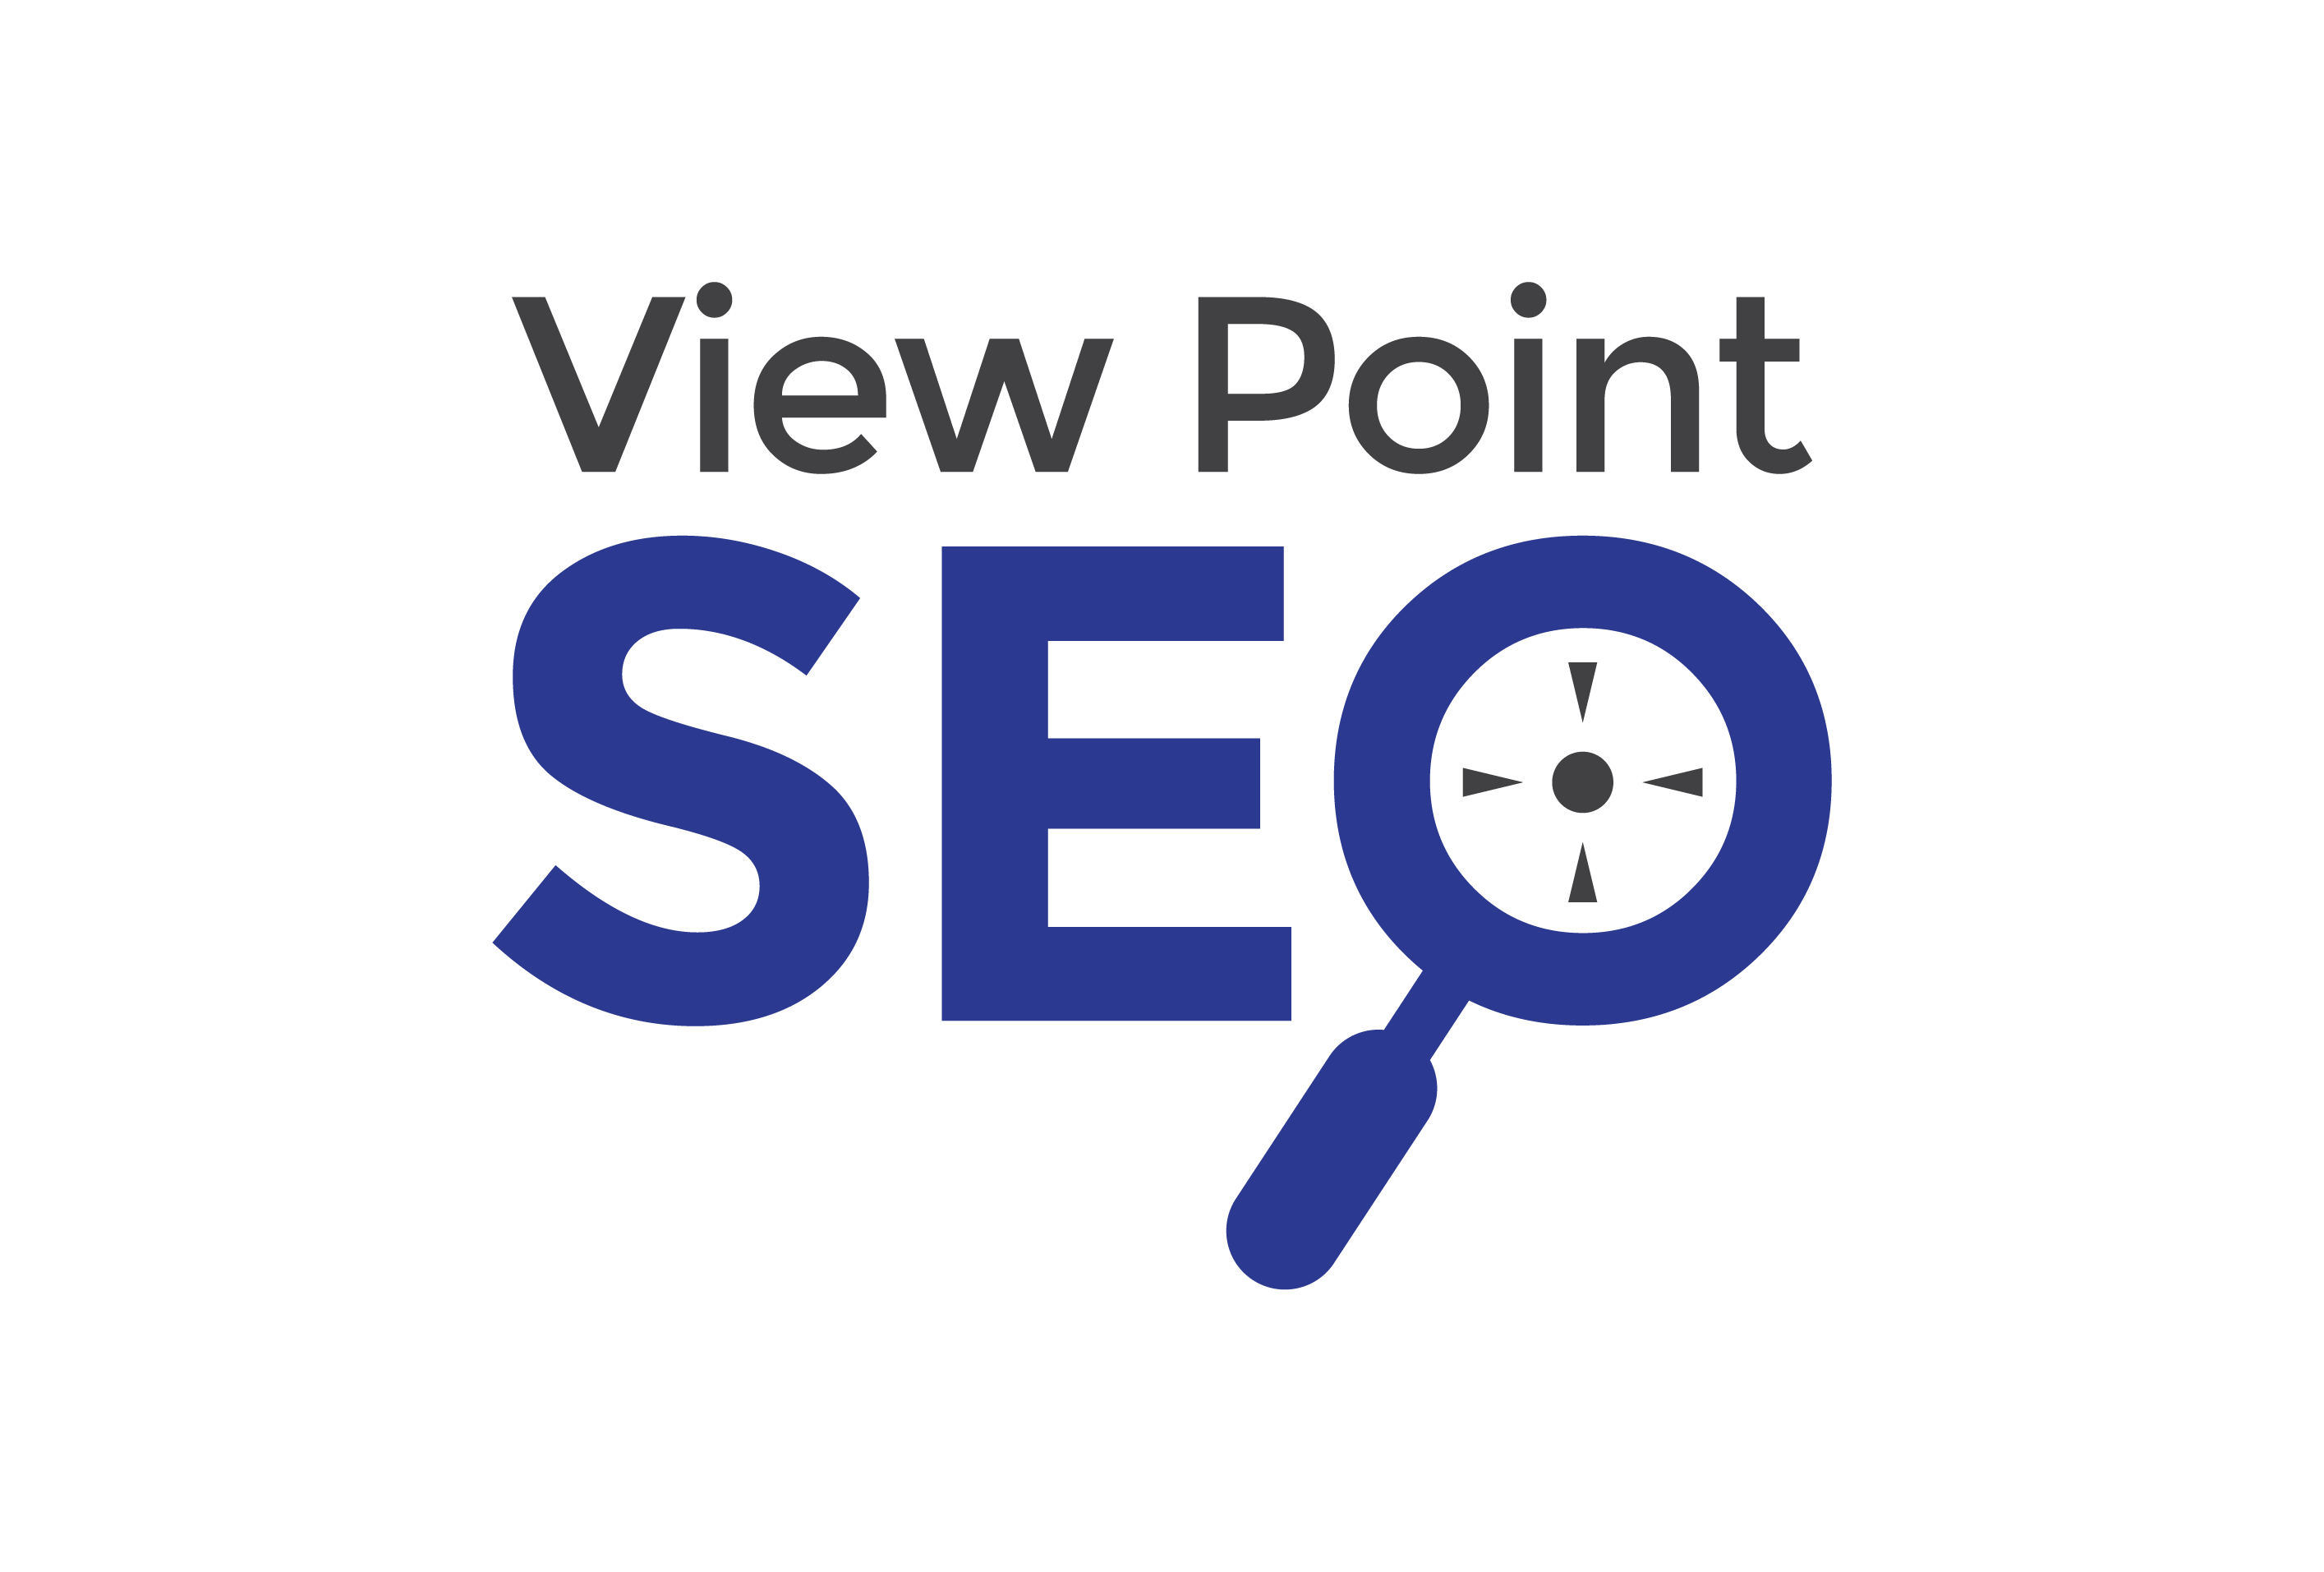 View_Point_SEO